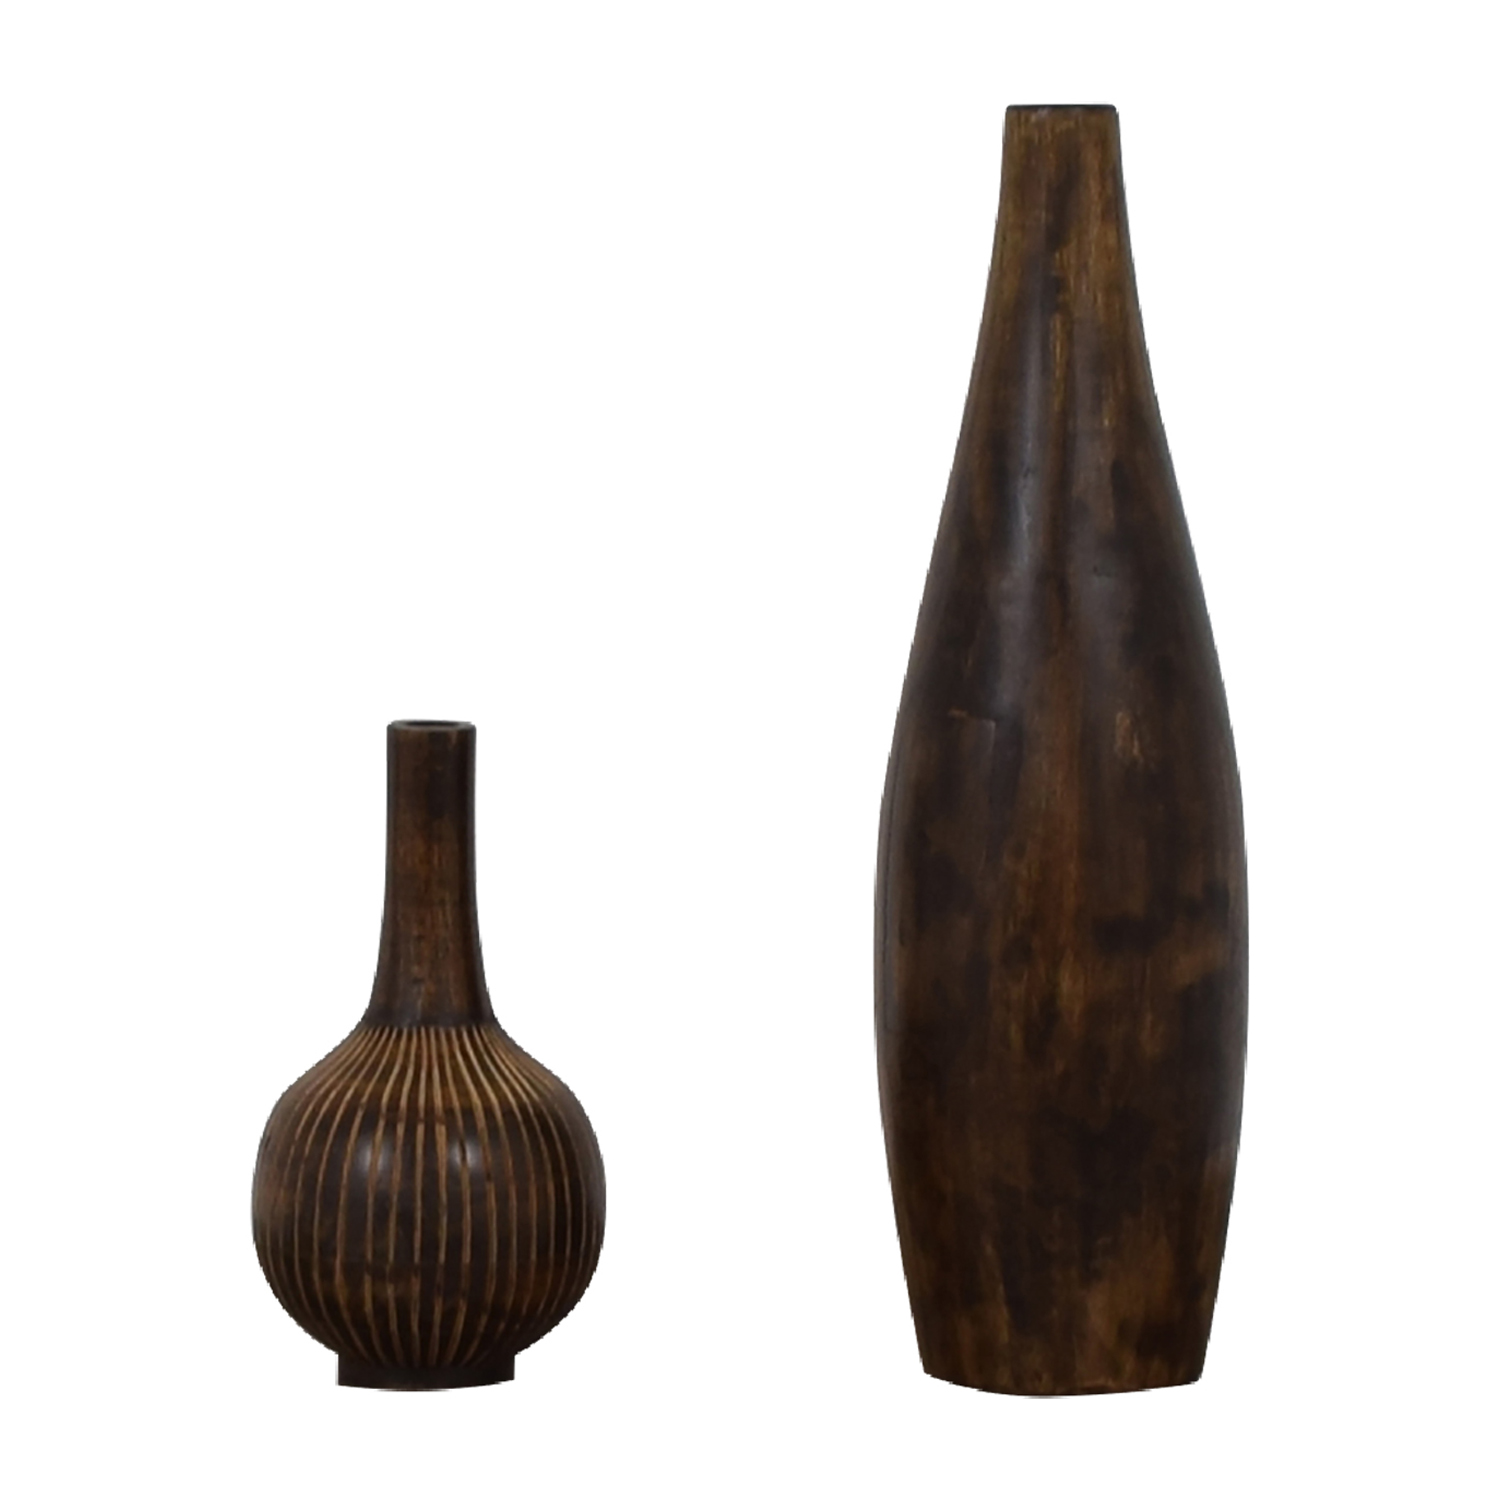 buy Elevations Wood Urns Elevations Decorative Accents